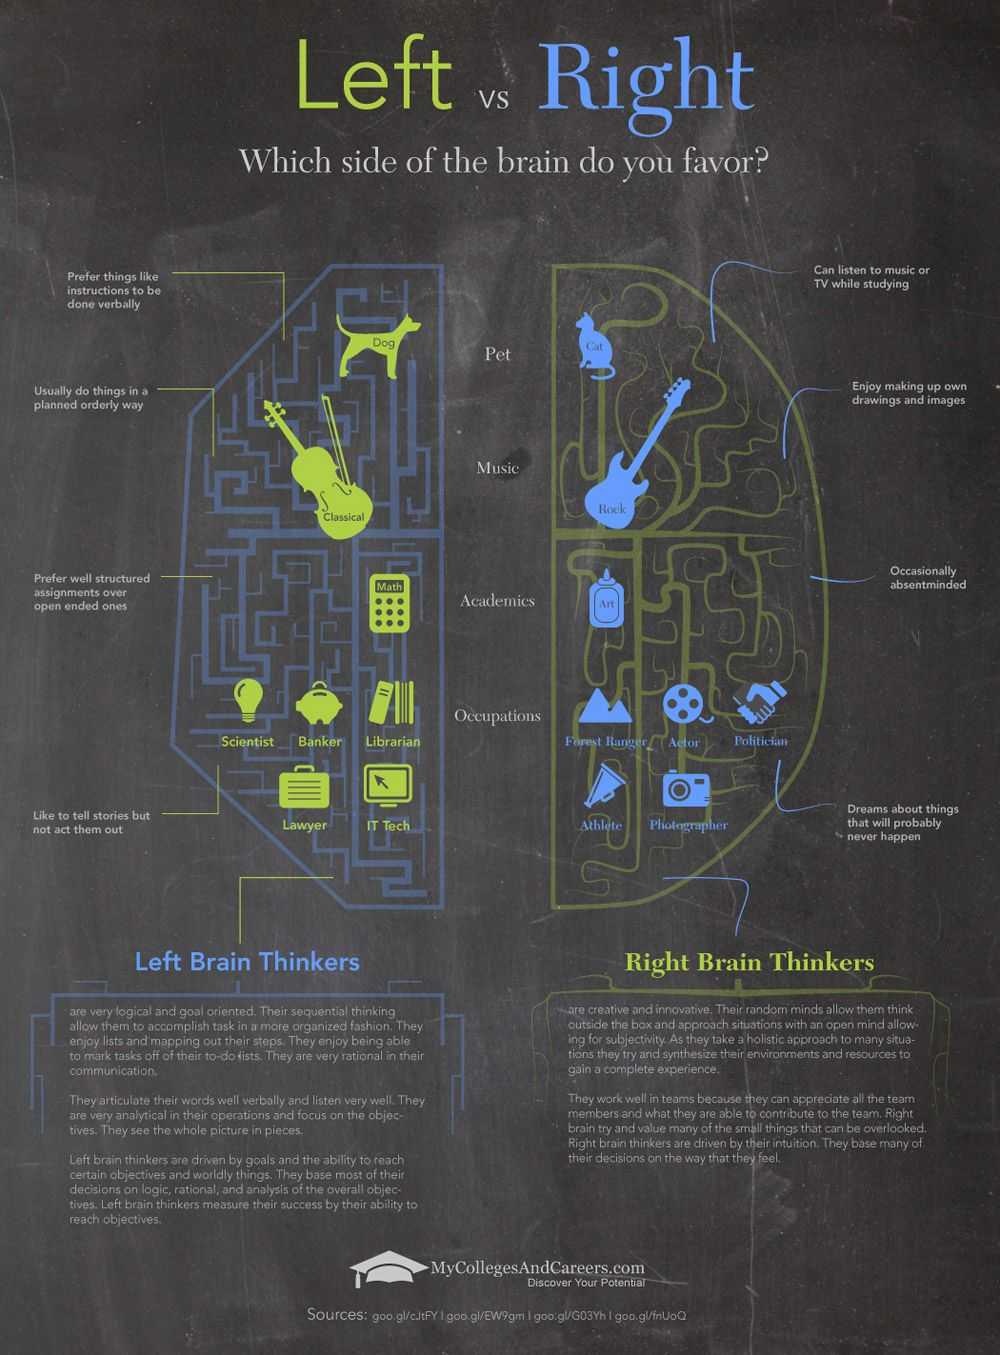 Right Brain vs. Left Brain. Which side of your brain do you favor?